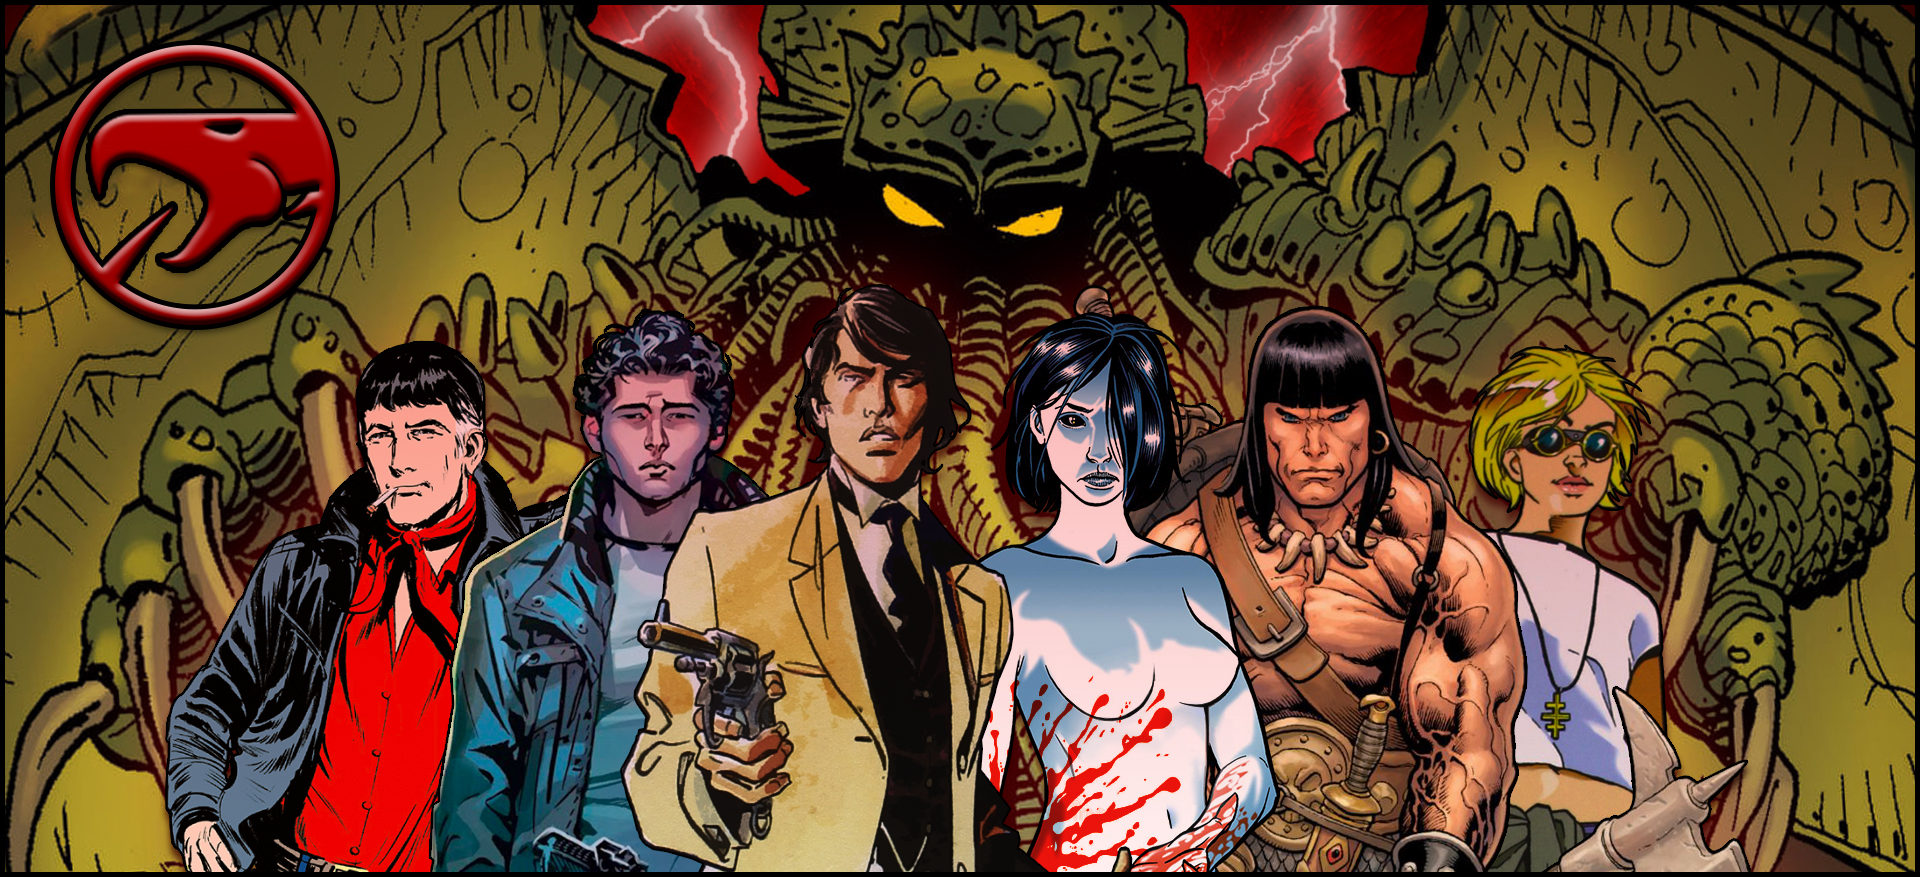 VortCast 93 | Red Dragon Publisher: Conan, Bonelli e o Mercado Editorial